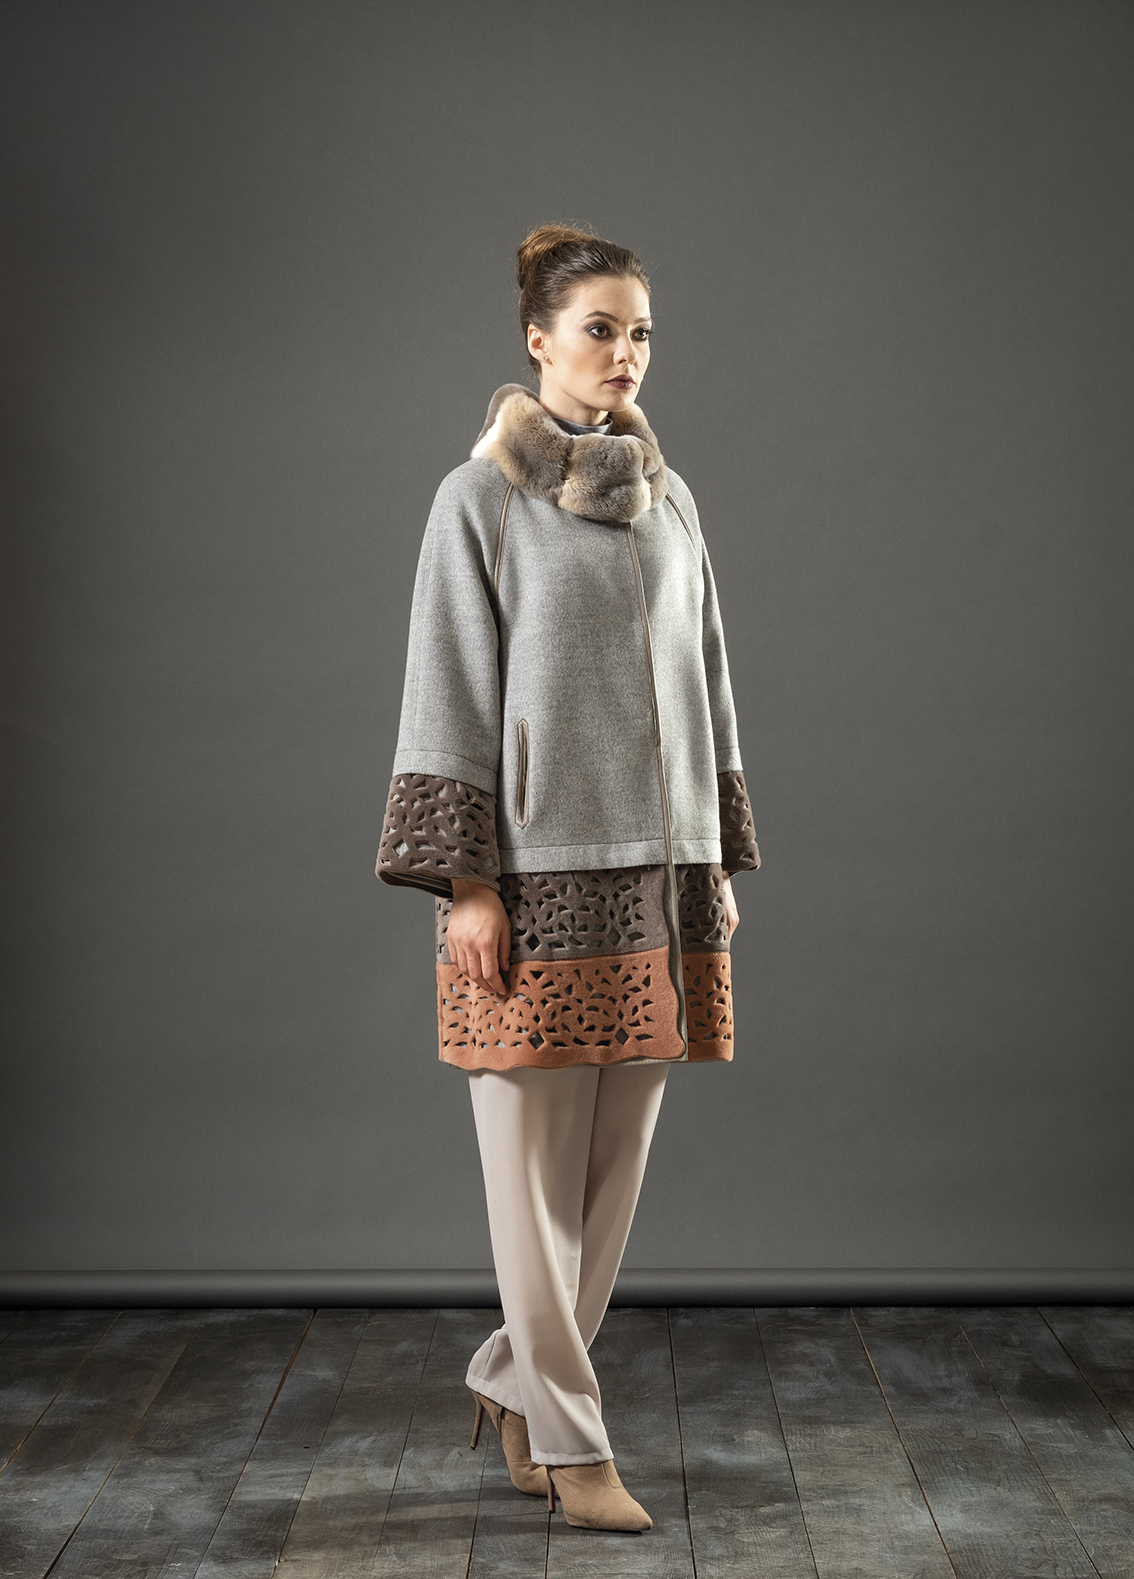 Giaccone cashmere + orylag + montone